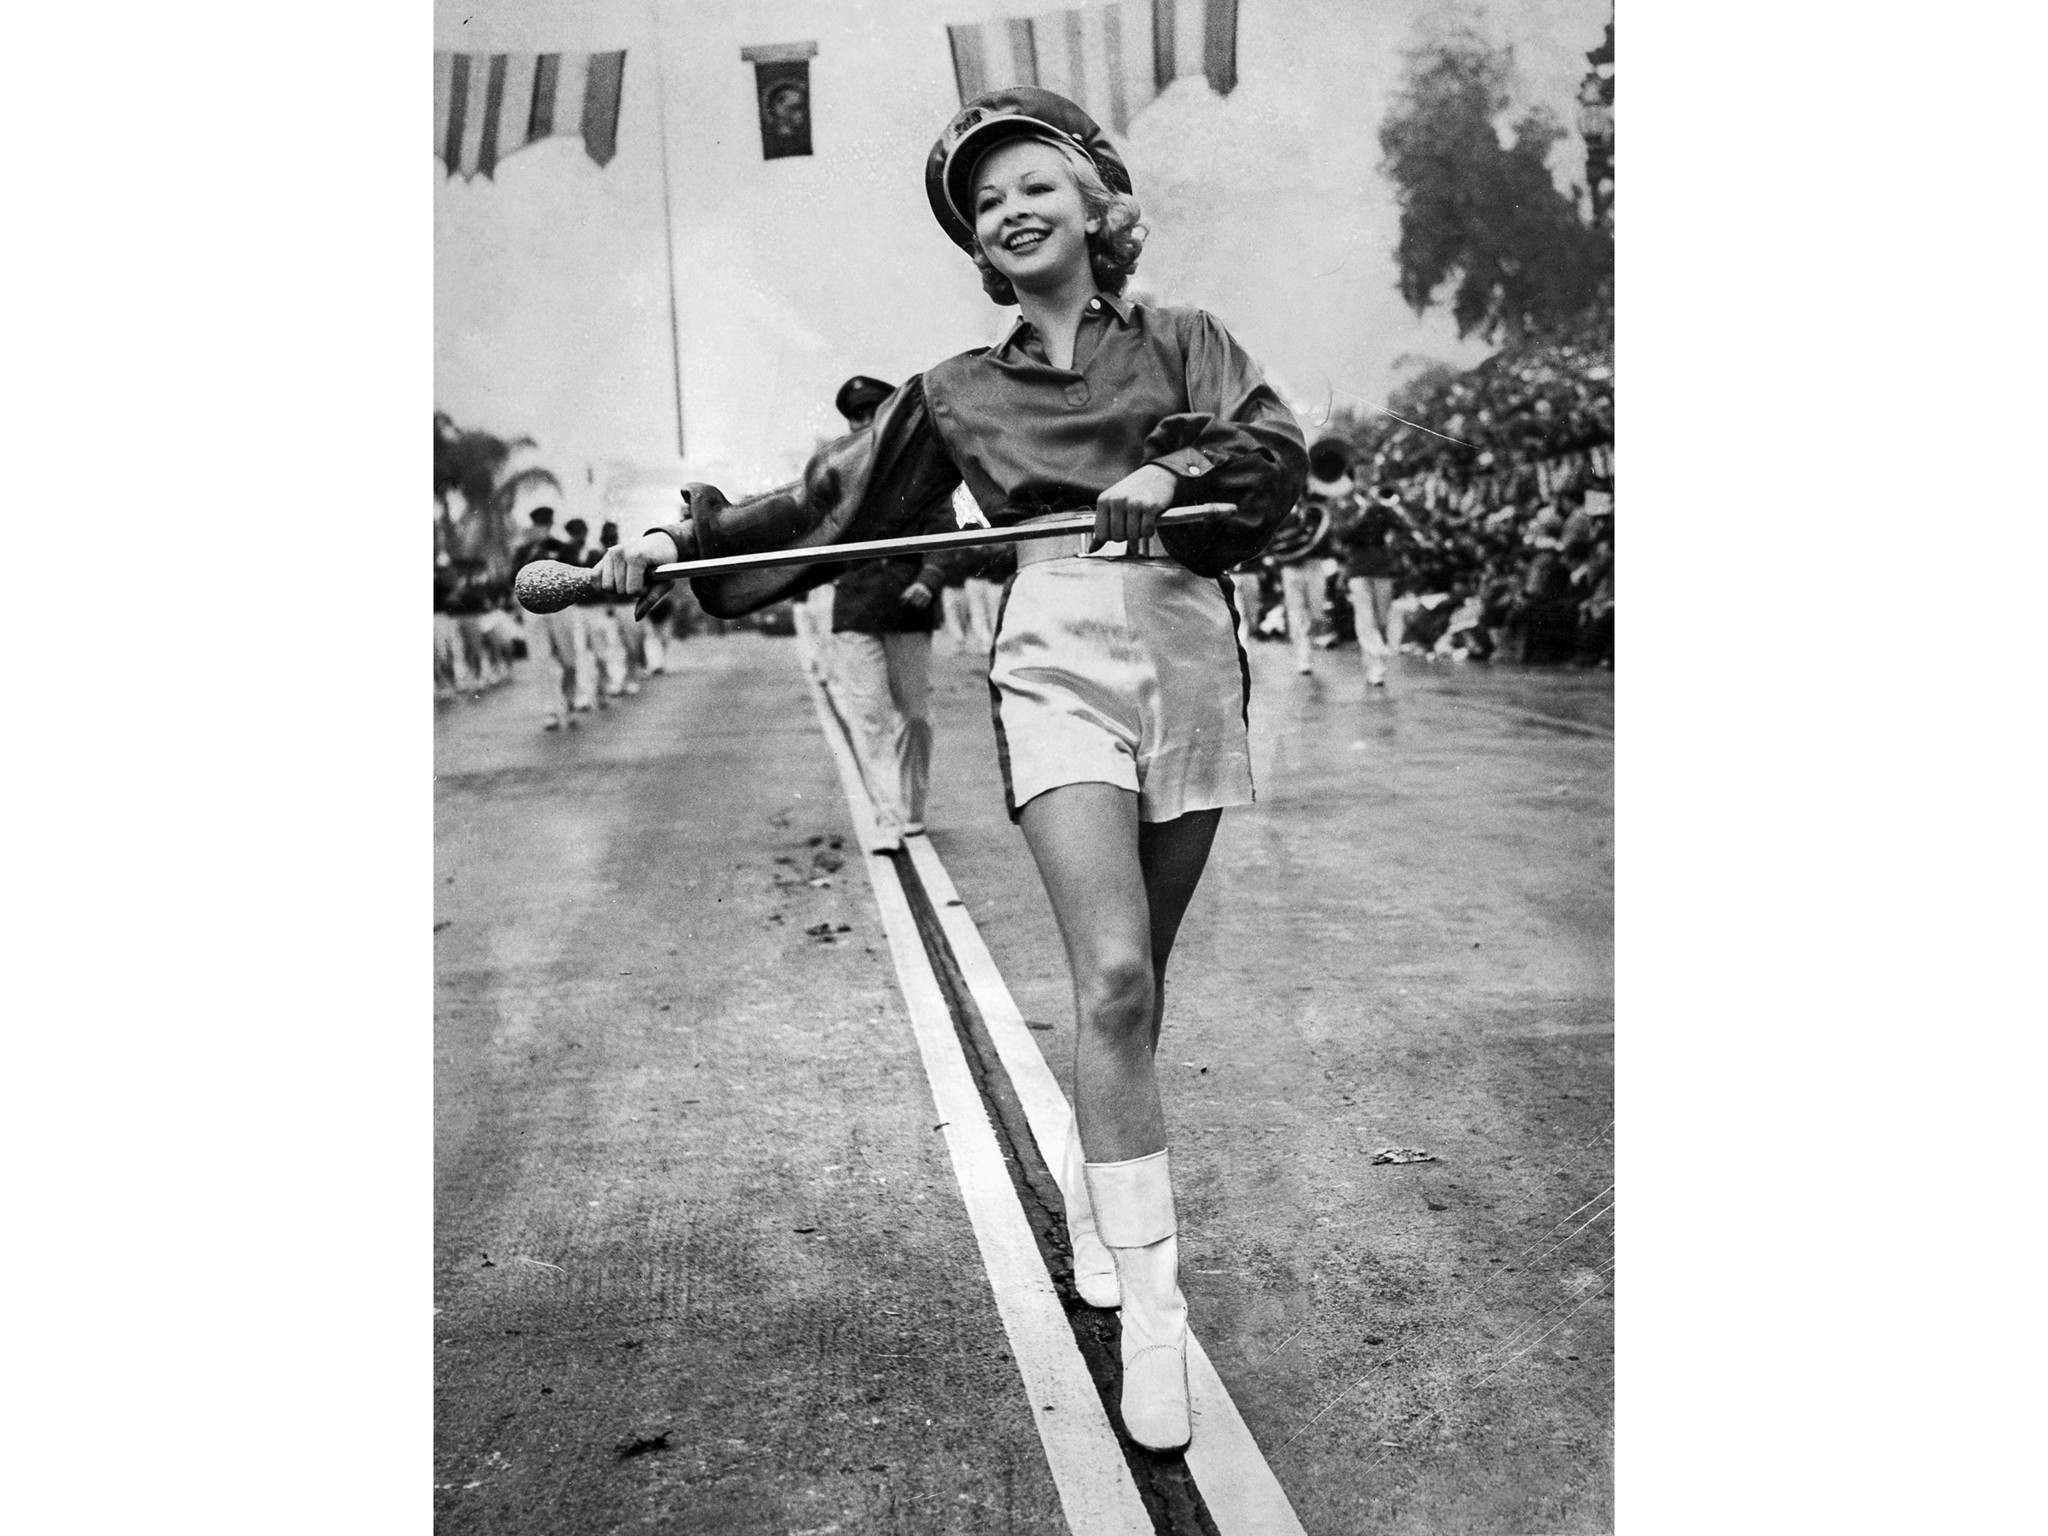 Jan. 1, 1940: Majorette marches with band in Tournament of Roses parade in photo published in the Ti